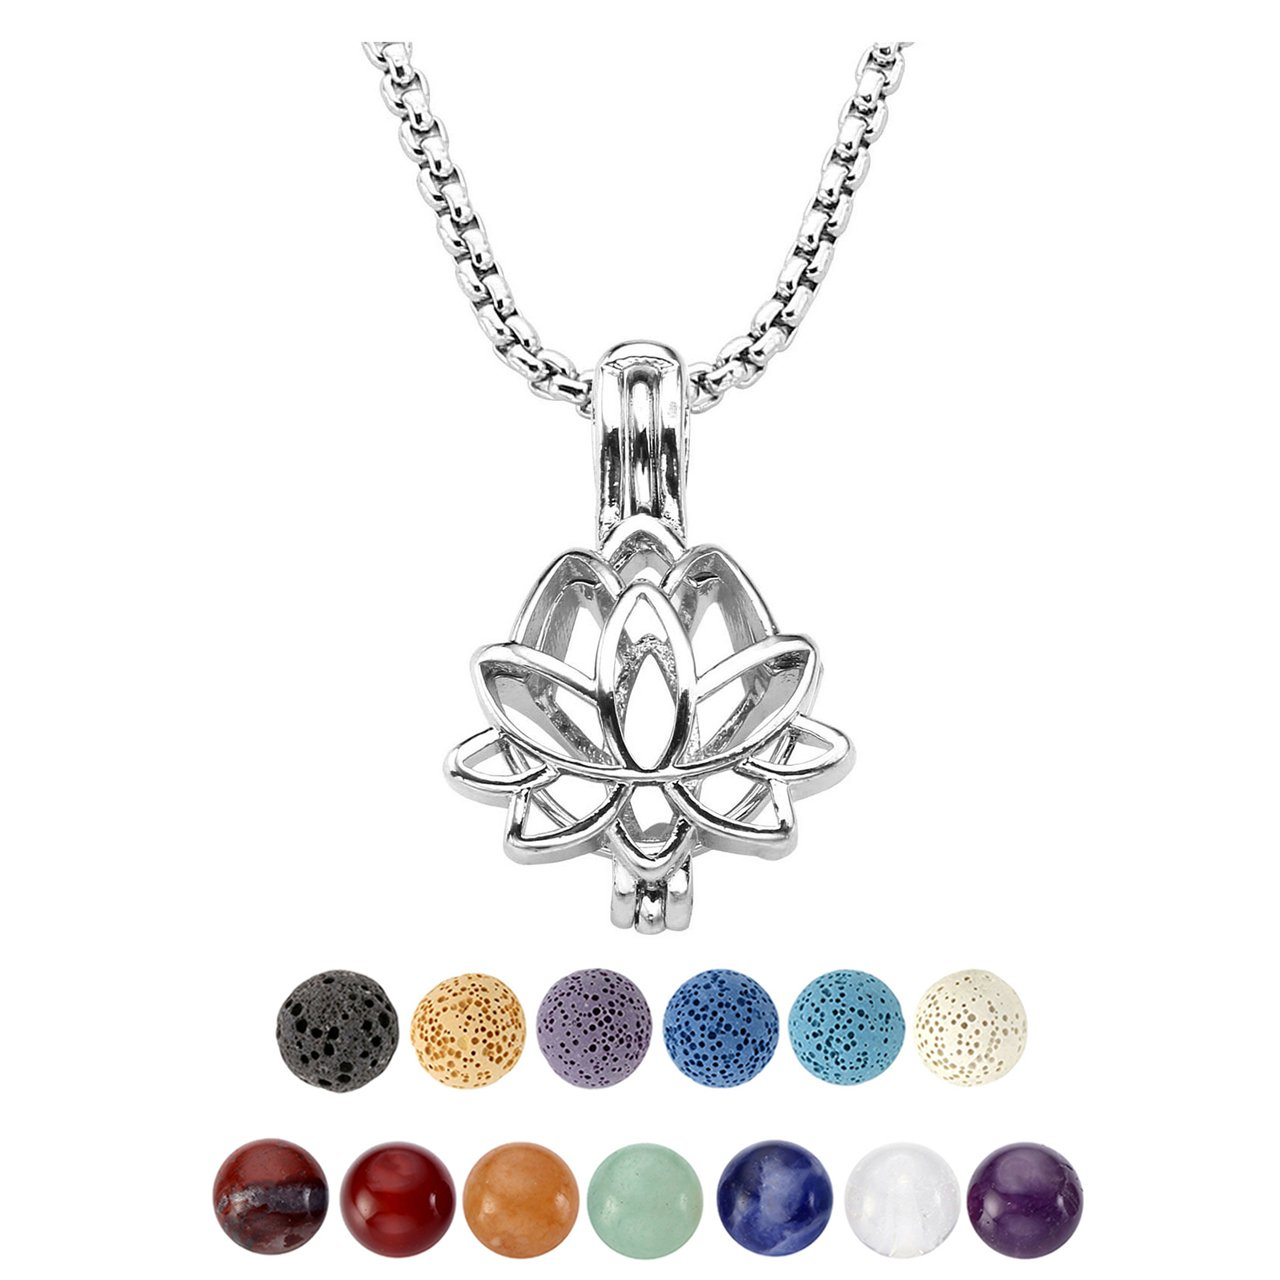 Top Plaza Mini 7 Chakra Reiki Healing Natural Crystal Stone Aromatherapy Lava Rock Stone Essential Oil Diffuser Necklace Hollow Pendant Necklace